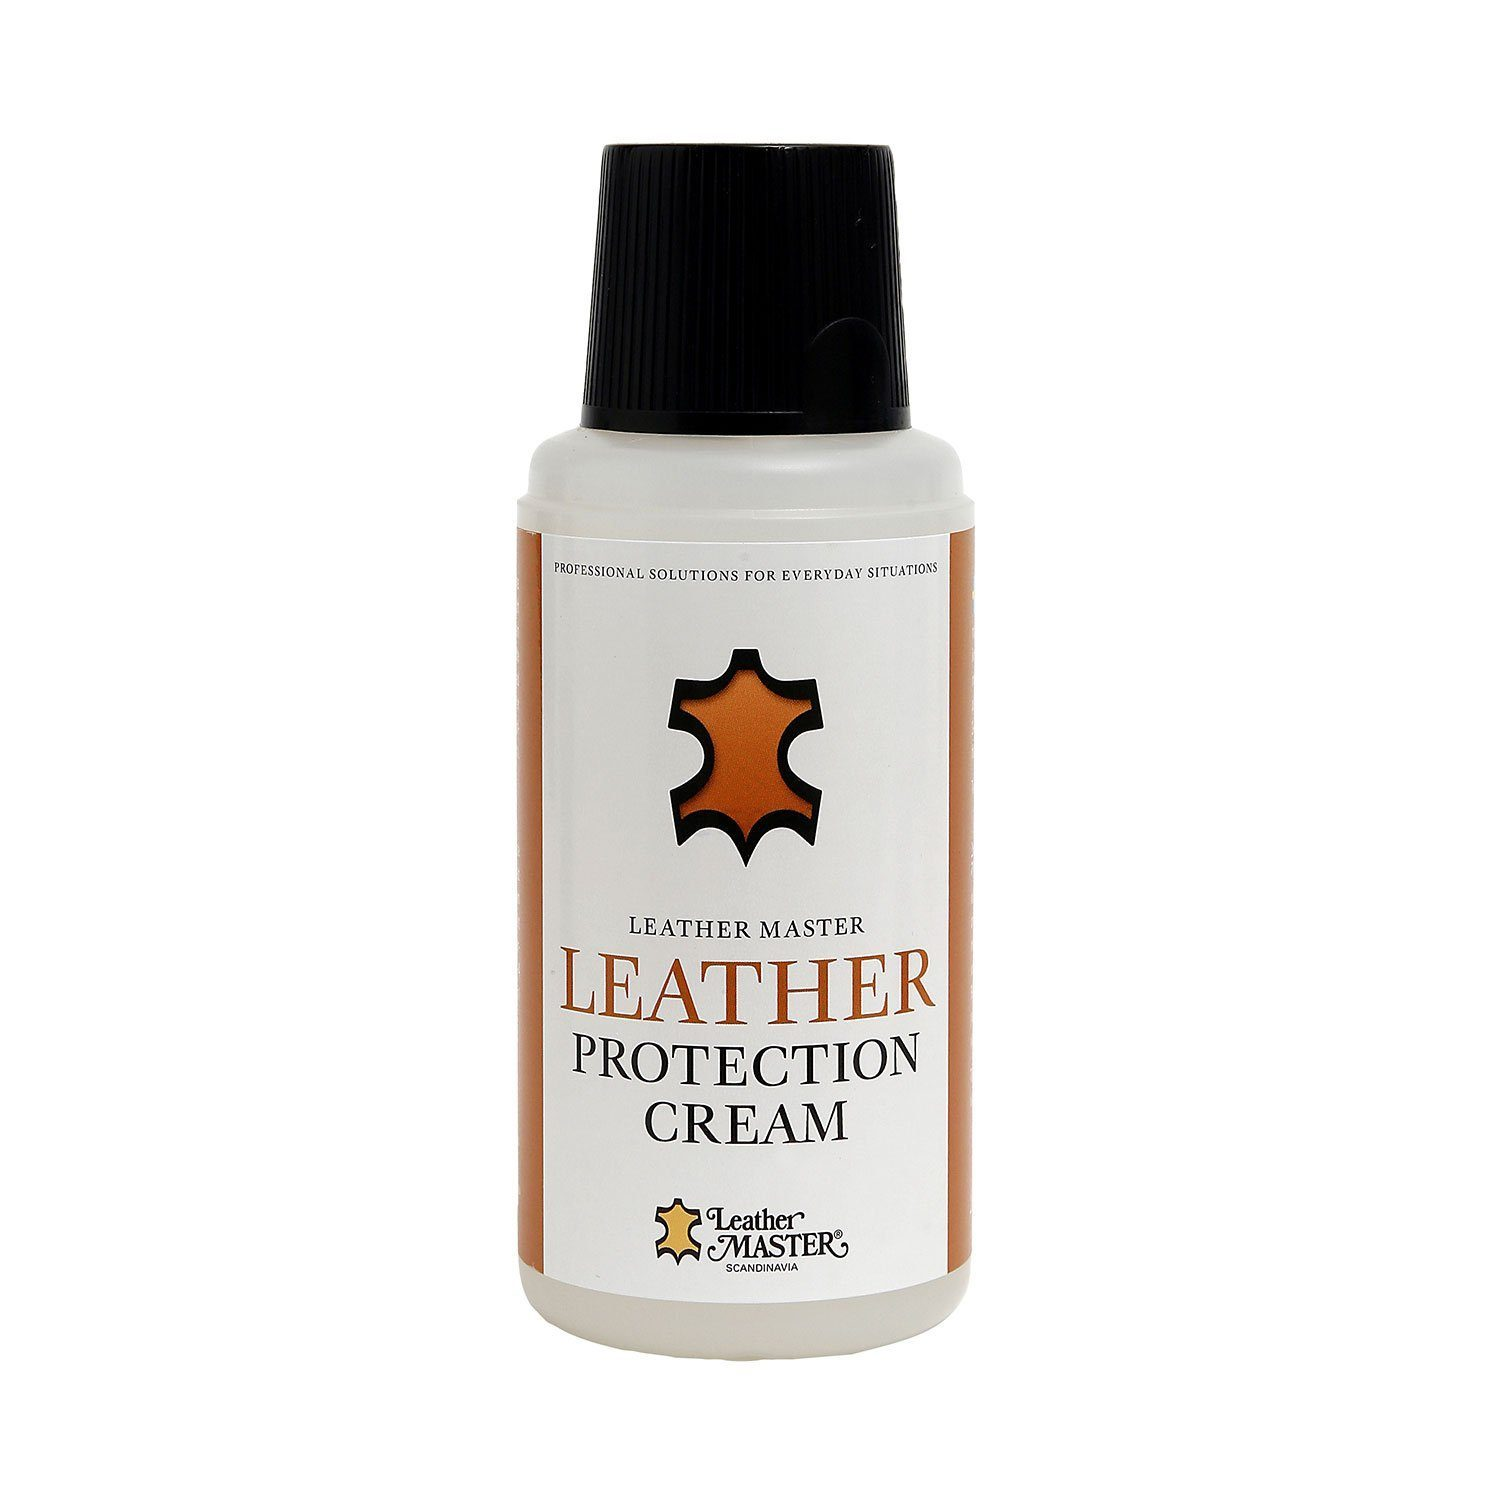 Leather Protection Cream från Leather Master.